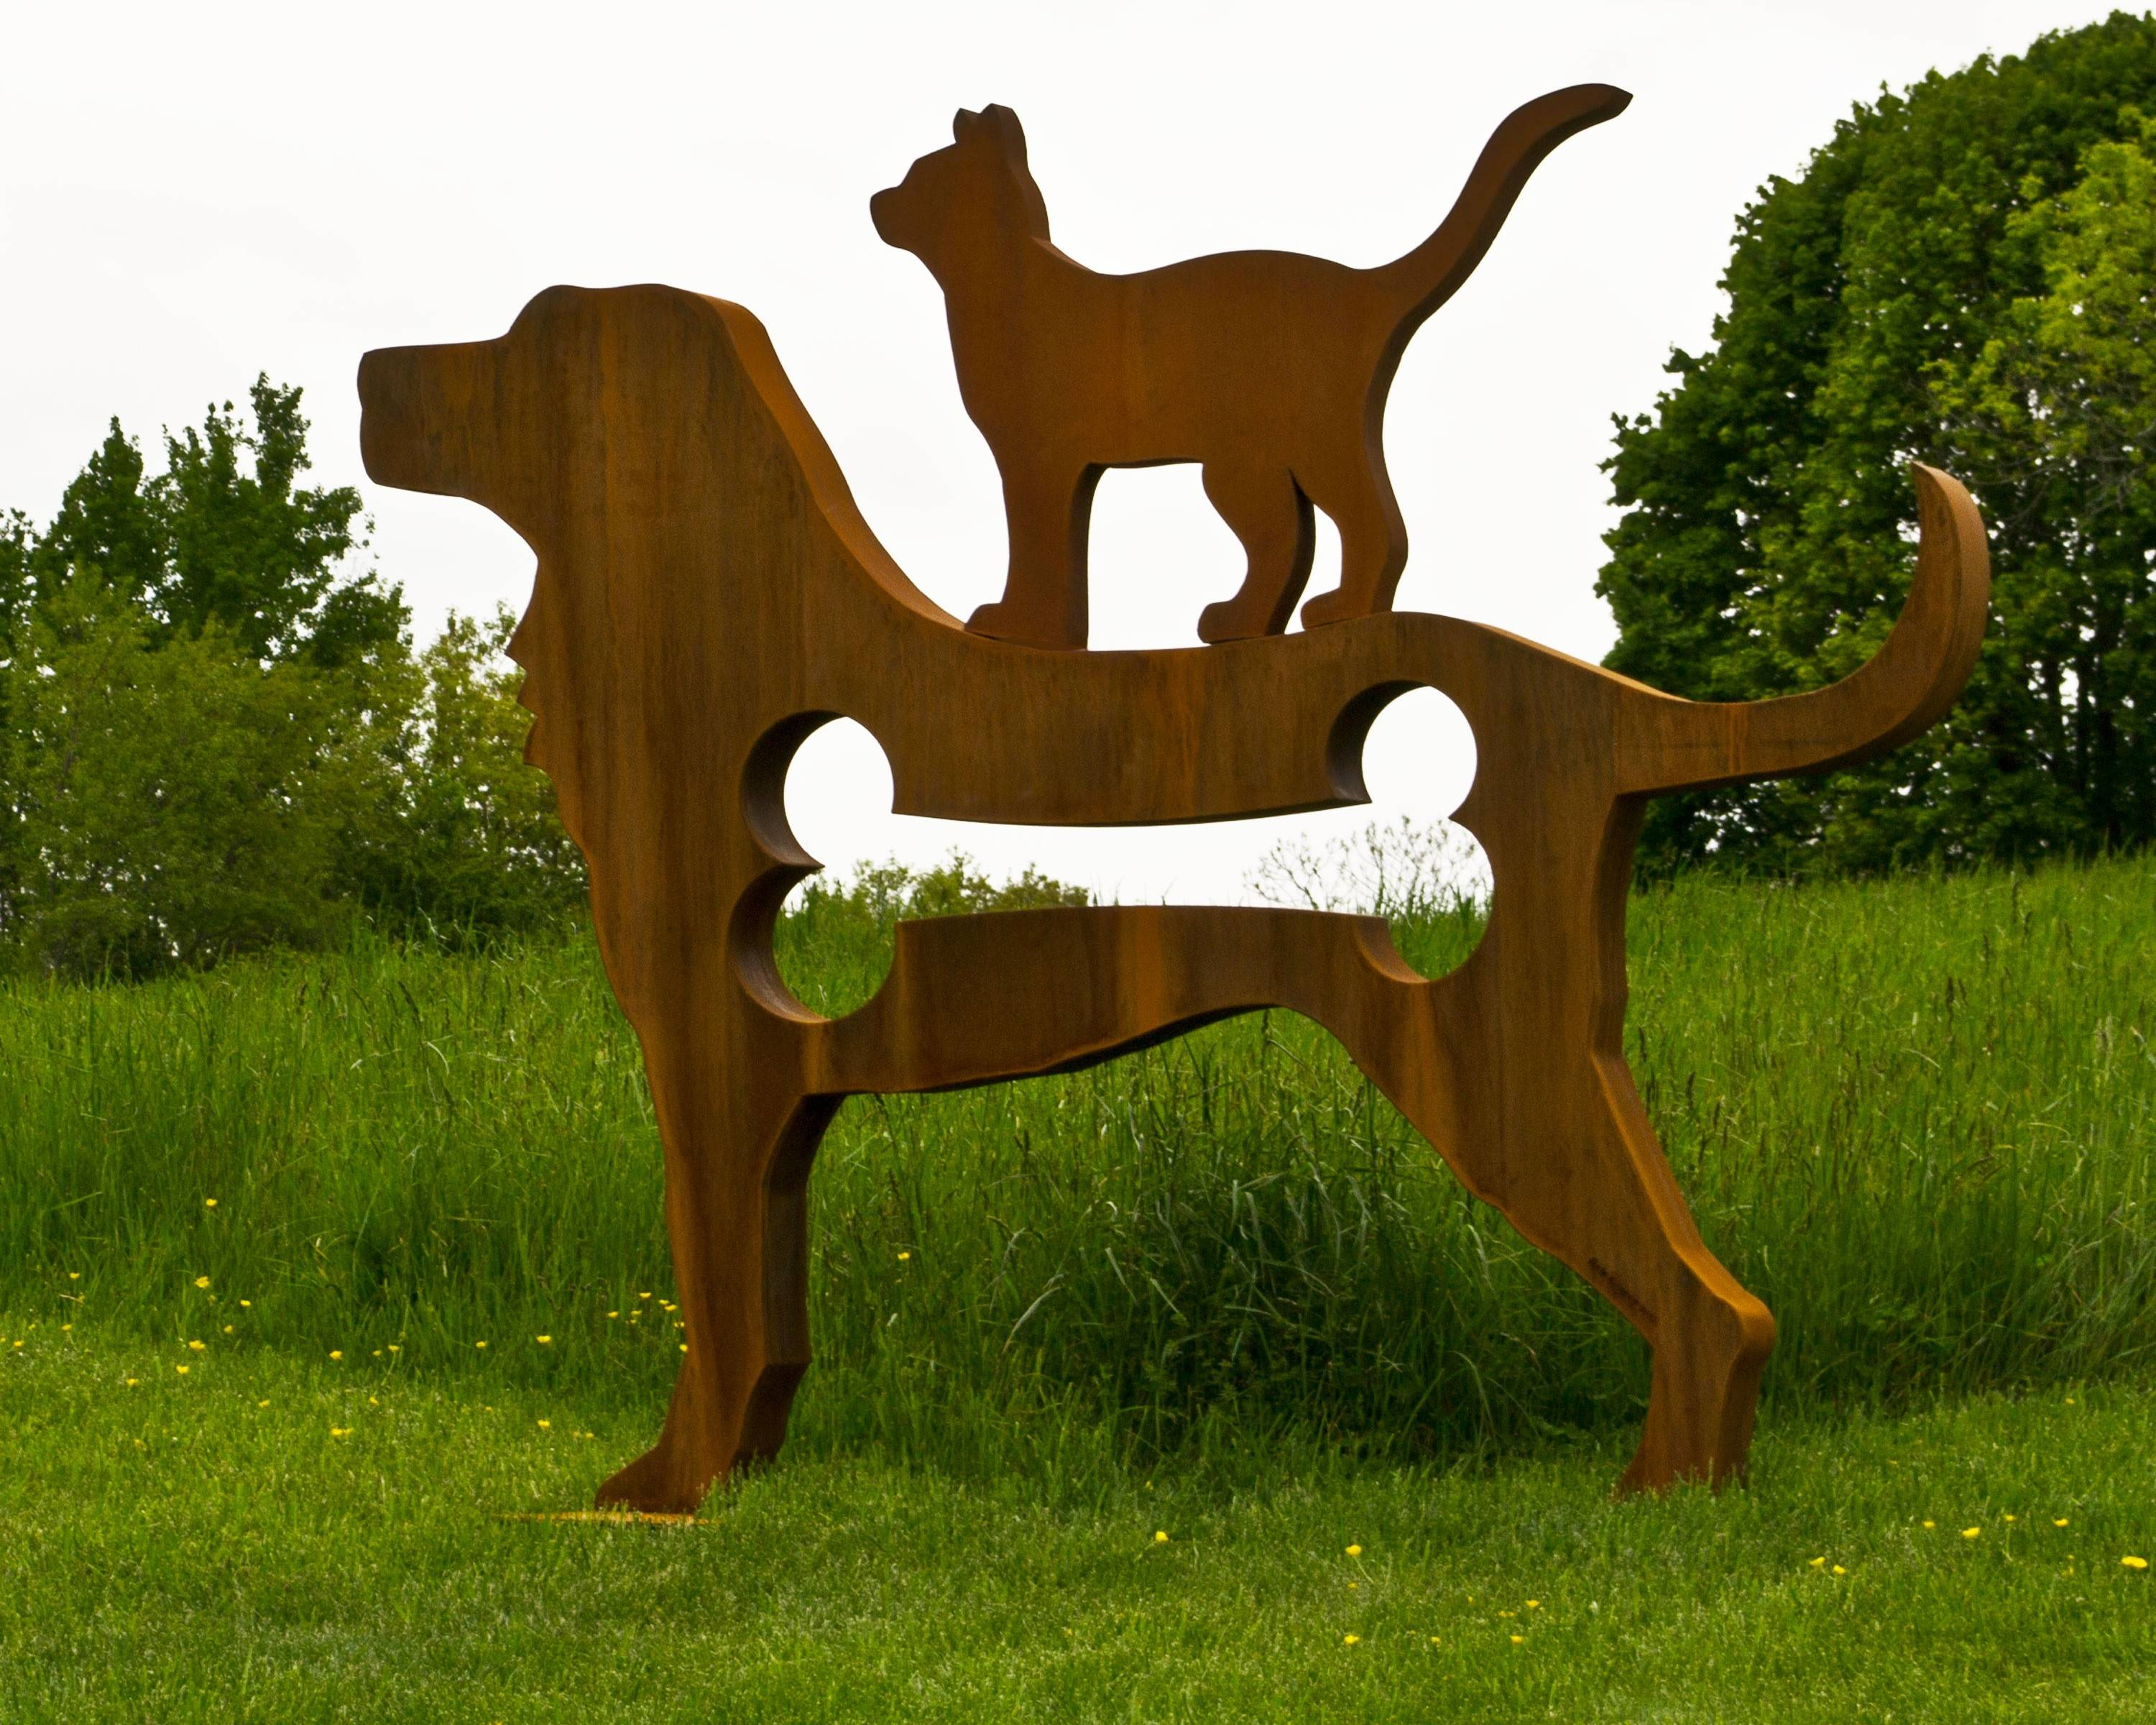 The Naperville Area Humane Society is raising funds to install this sculpture of a dog and cat by artist Dale Rogers near the Naperville Park District administration building and Centennial Beach. The society hopes to dedicate the sculpture in the summer or fall to celebrate its 35th anniversary.